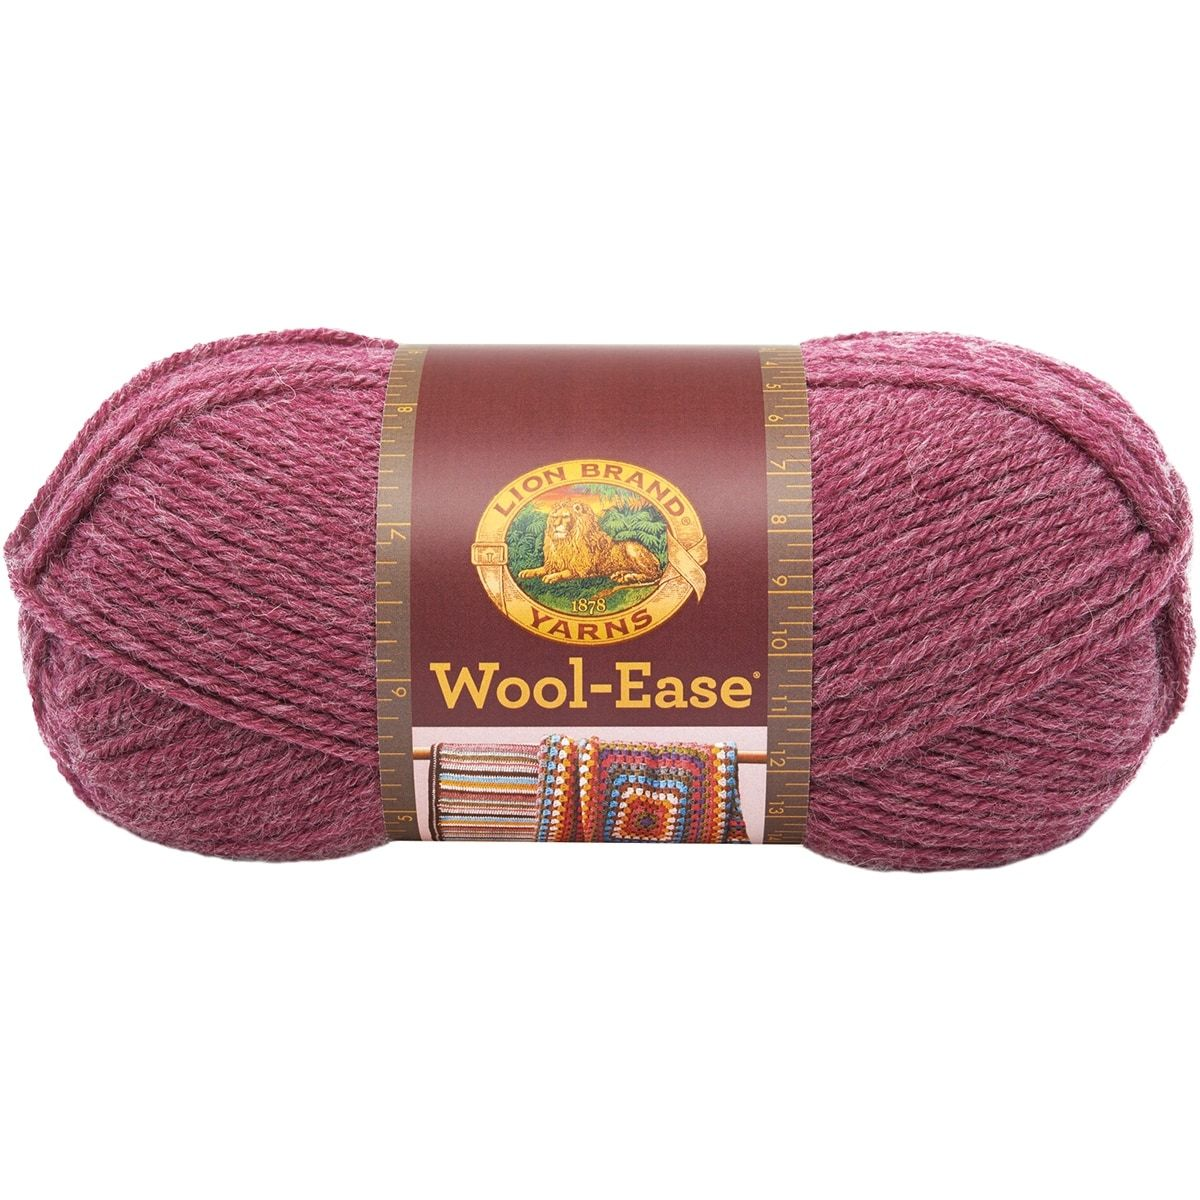 Lion Brand Wool-Ease Yarn -Dark Rose Heather - dark rose heather